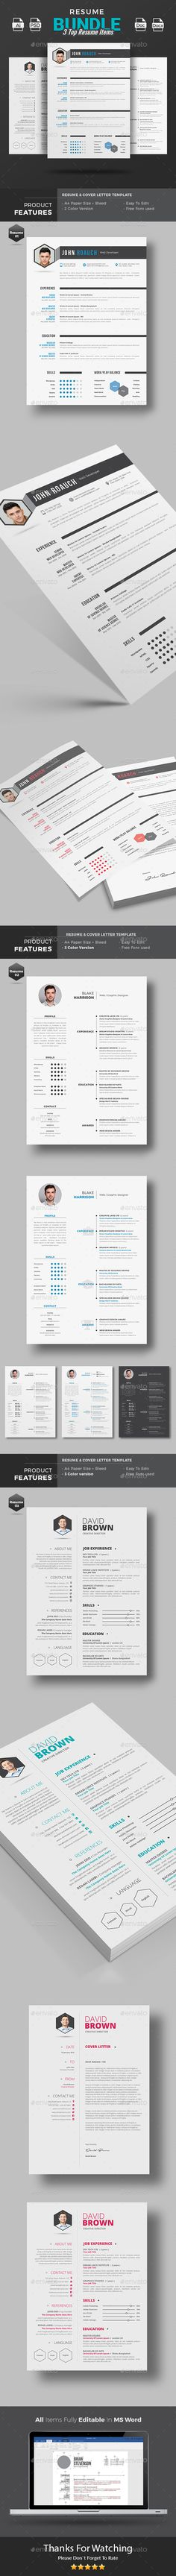 Comfortable 1 Page Website Template Thin 1.25 Button Template Regular 2 Column Css Template 2 Round Label Template Old 2010 Calendar Template Dark2010 Powerpoint Templates Resume | 2!, Everything And Words